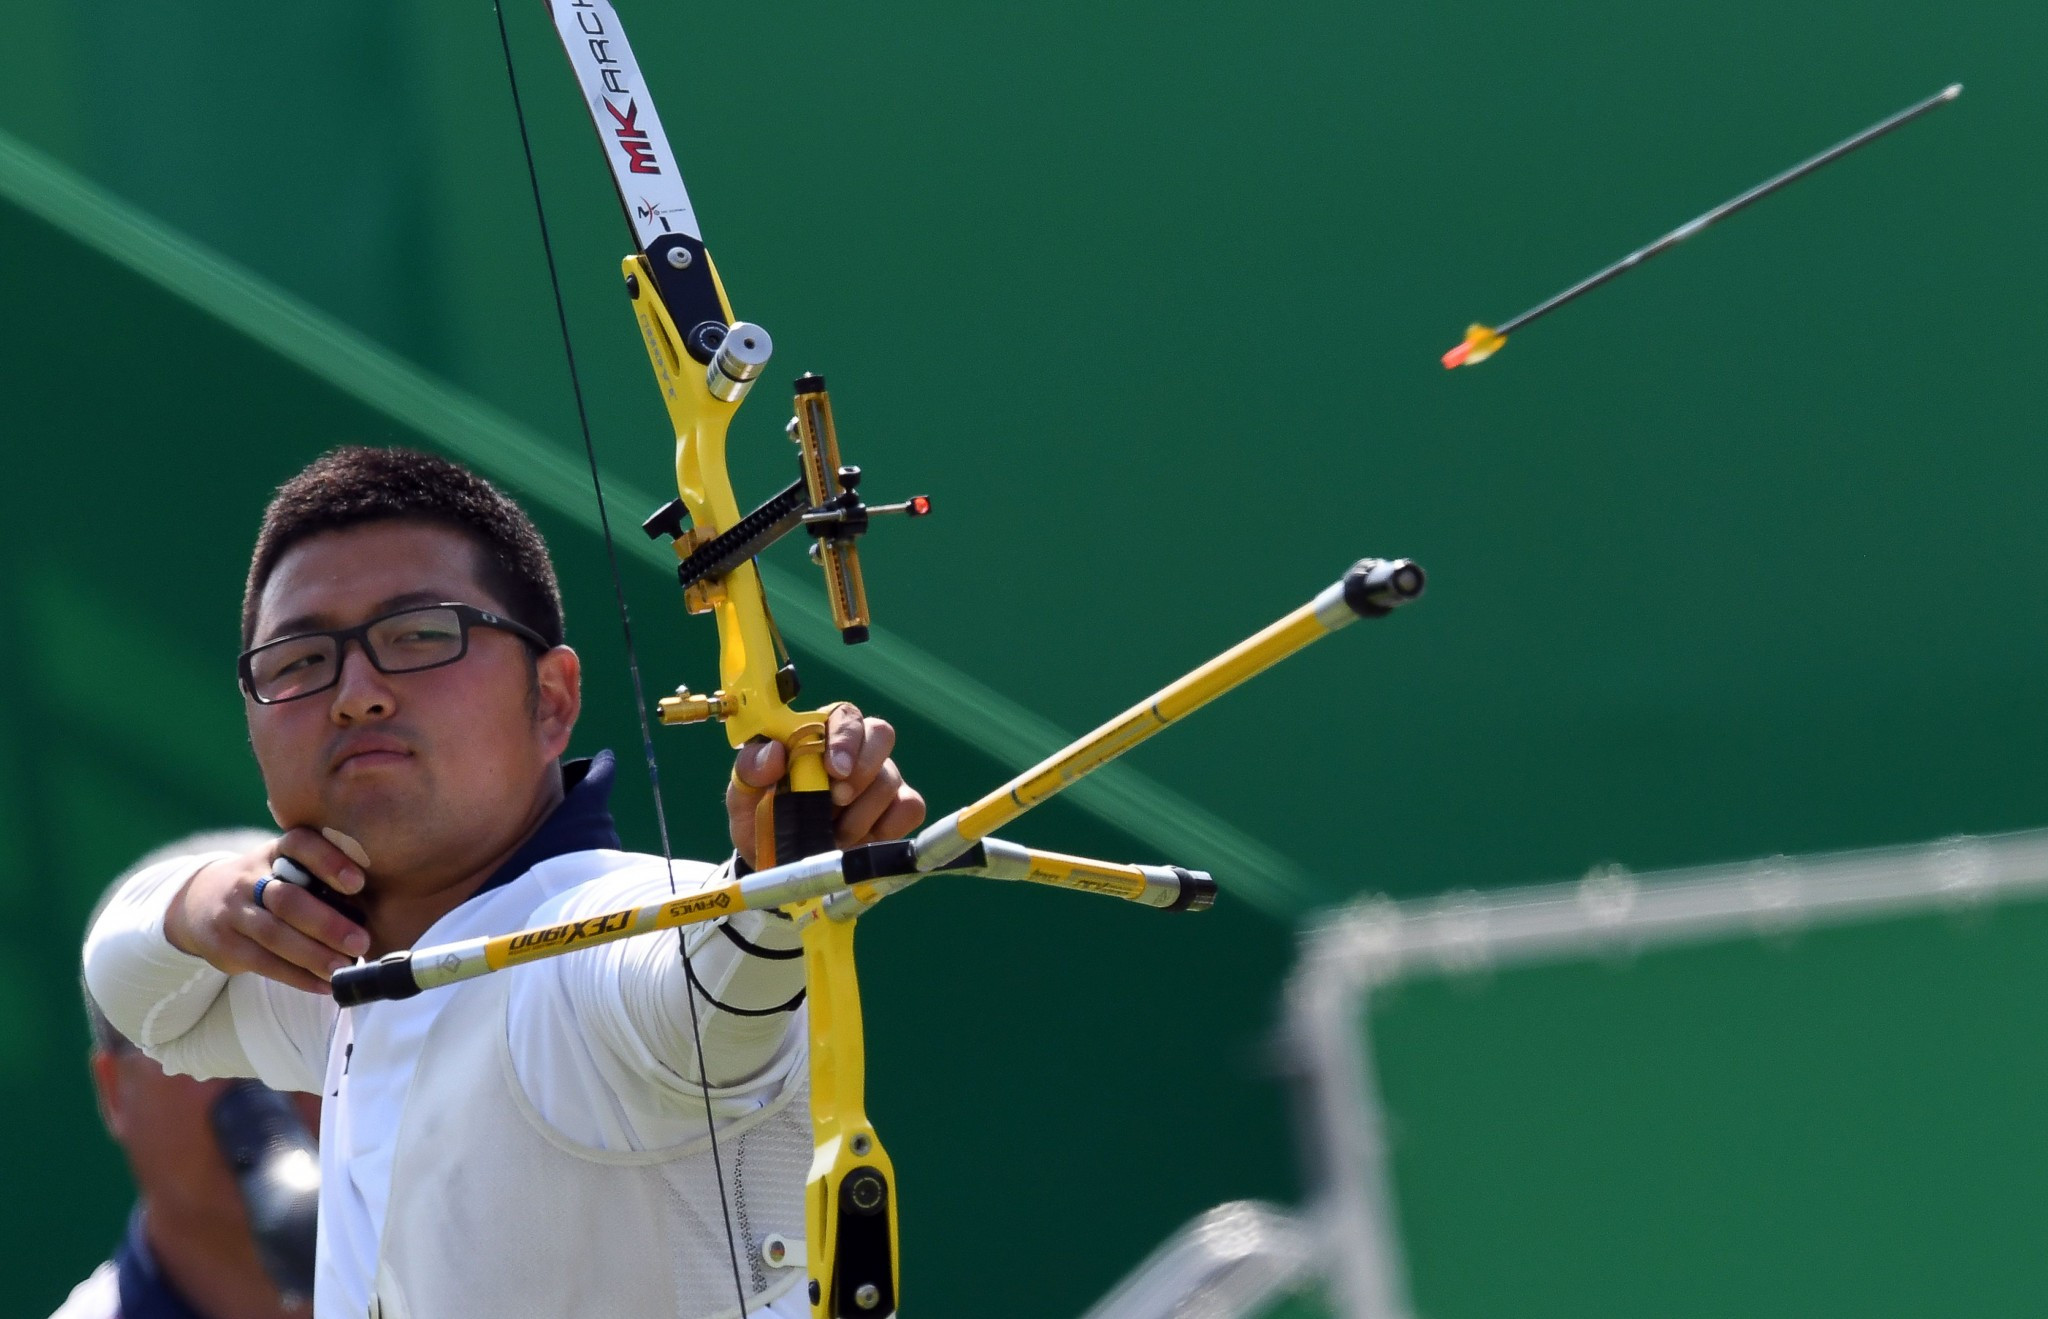 South Koreans to meet in Archery World Cup final in Berlin